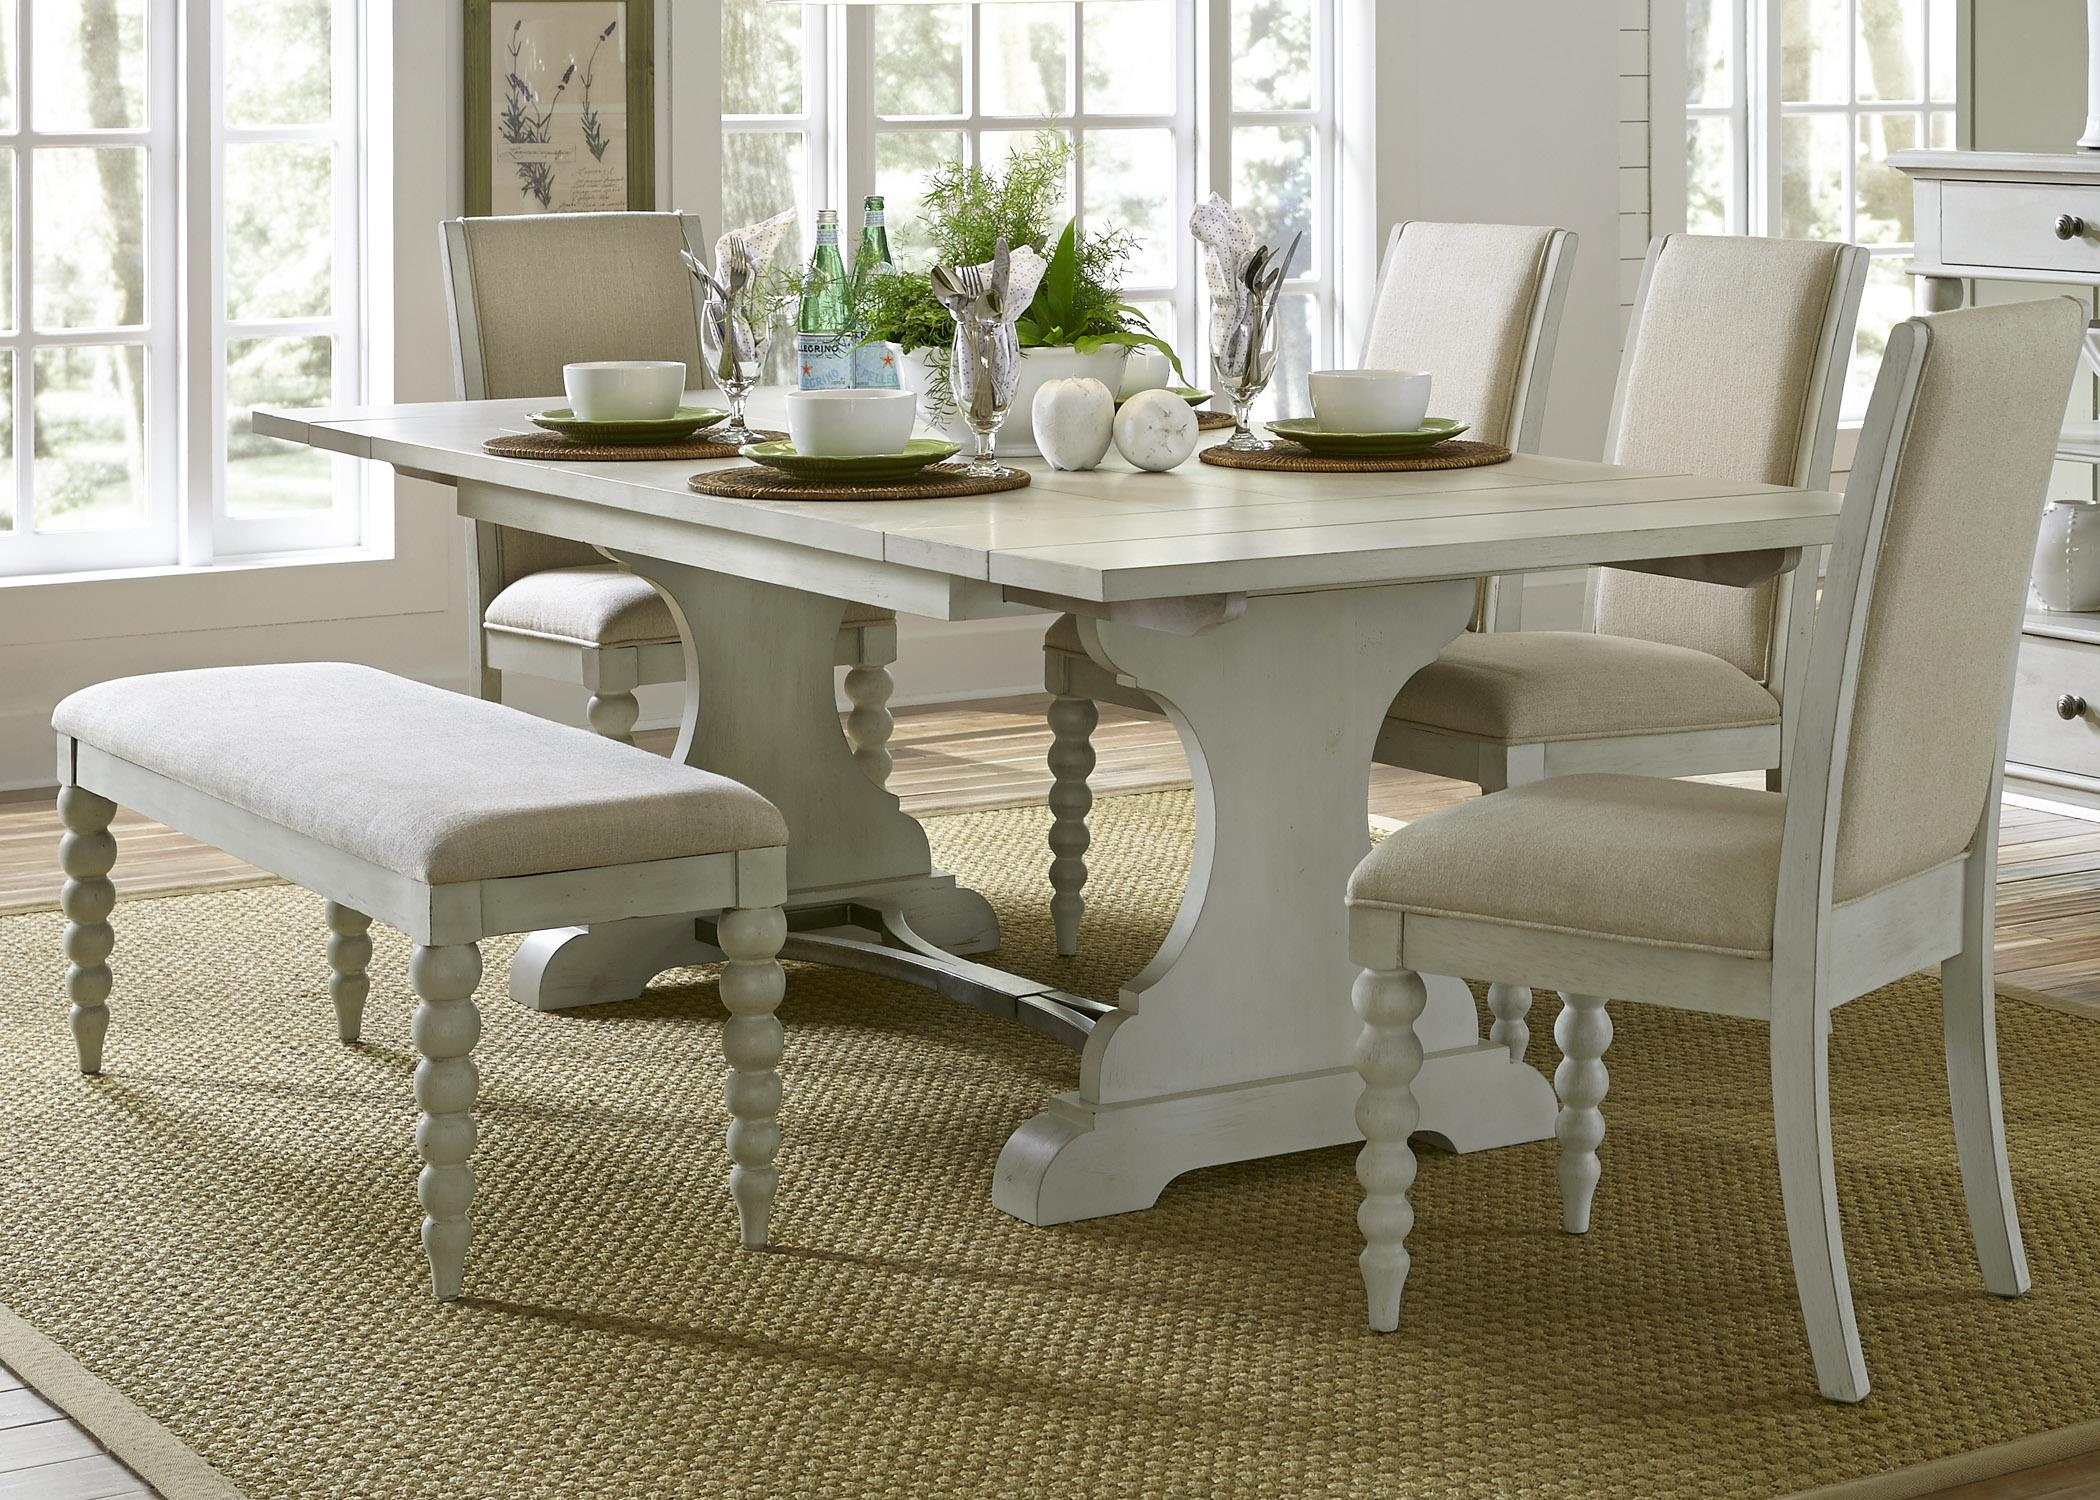 Liberty Furniture Harbor View Trestle Table and Side Chair and Bench Set - Item Number: 731-DR-O6TRS